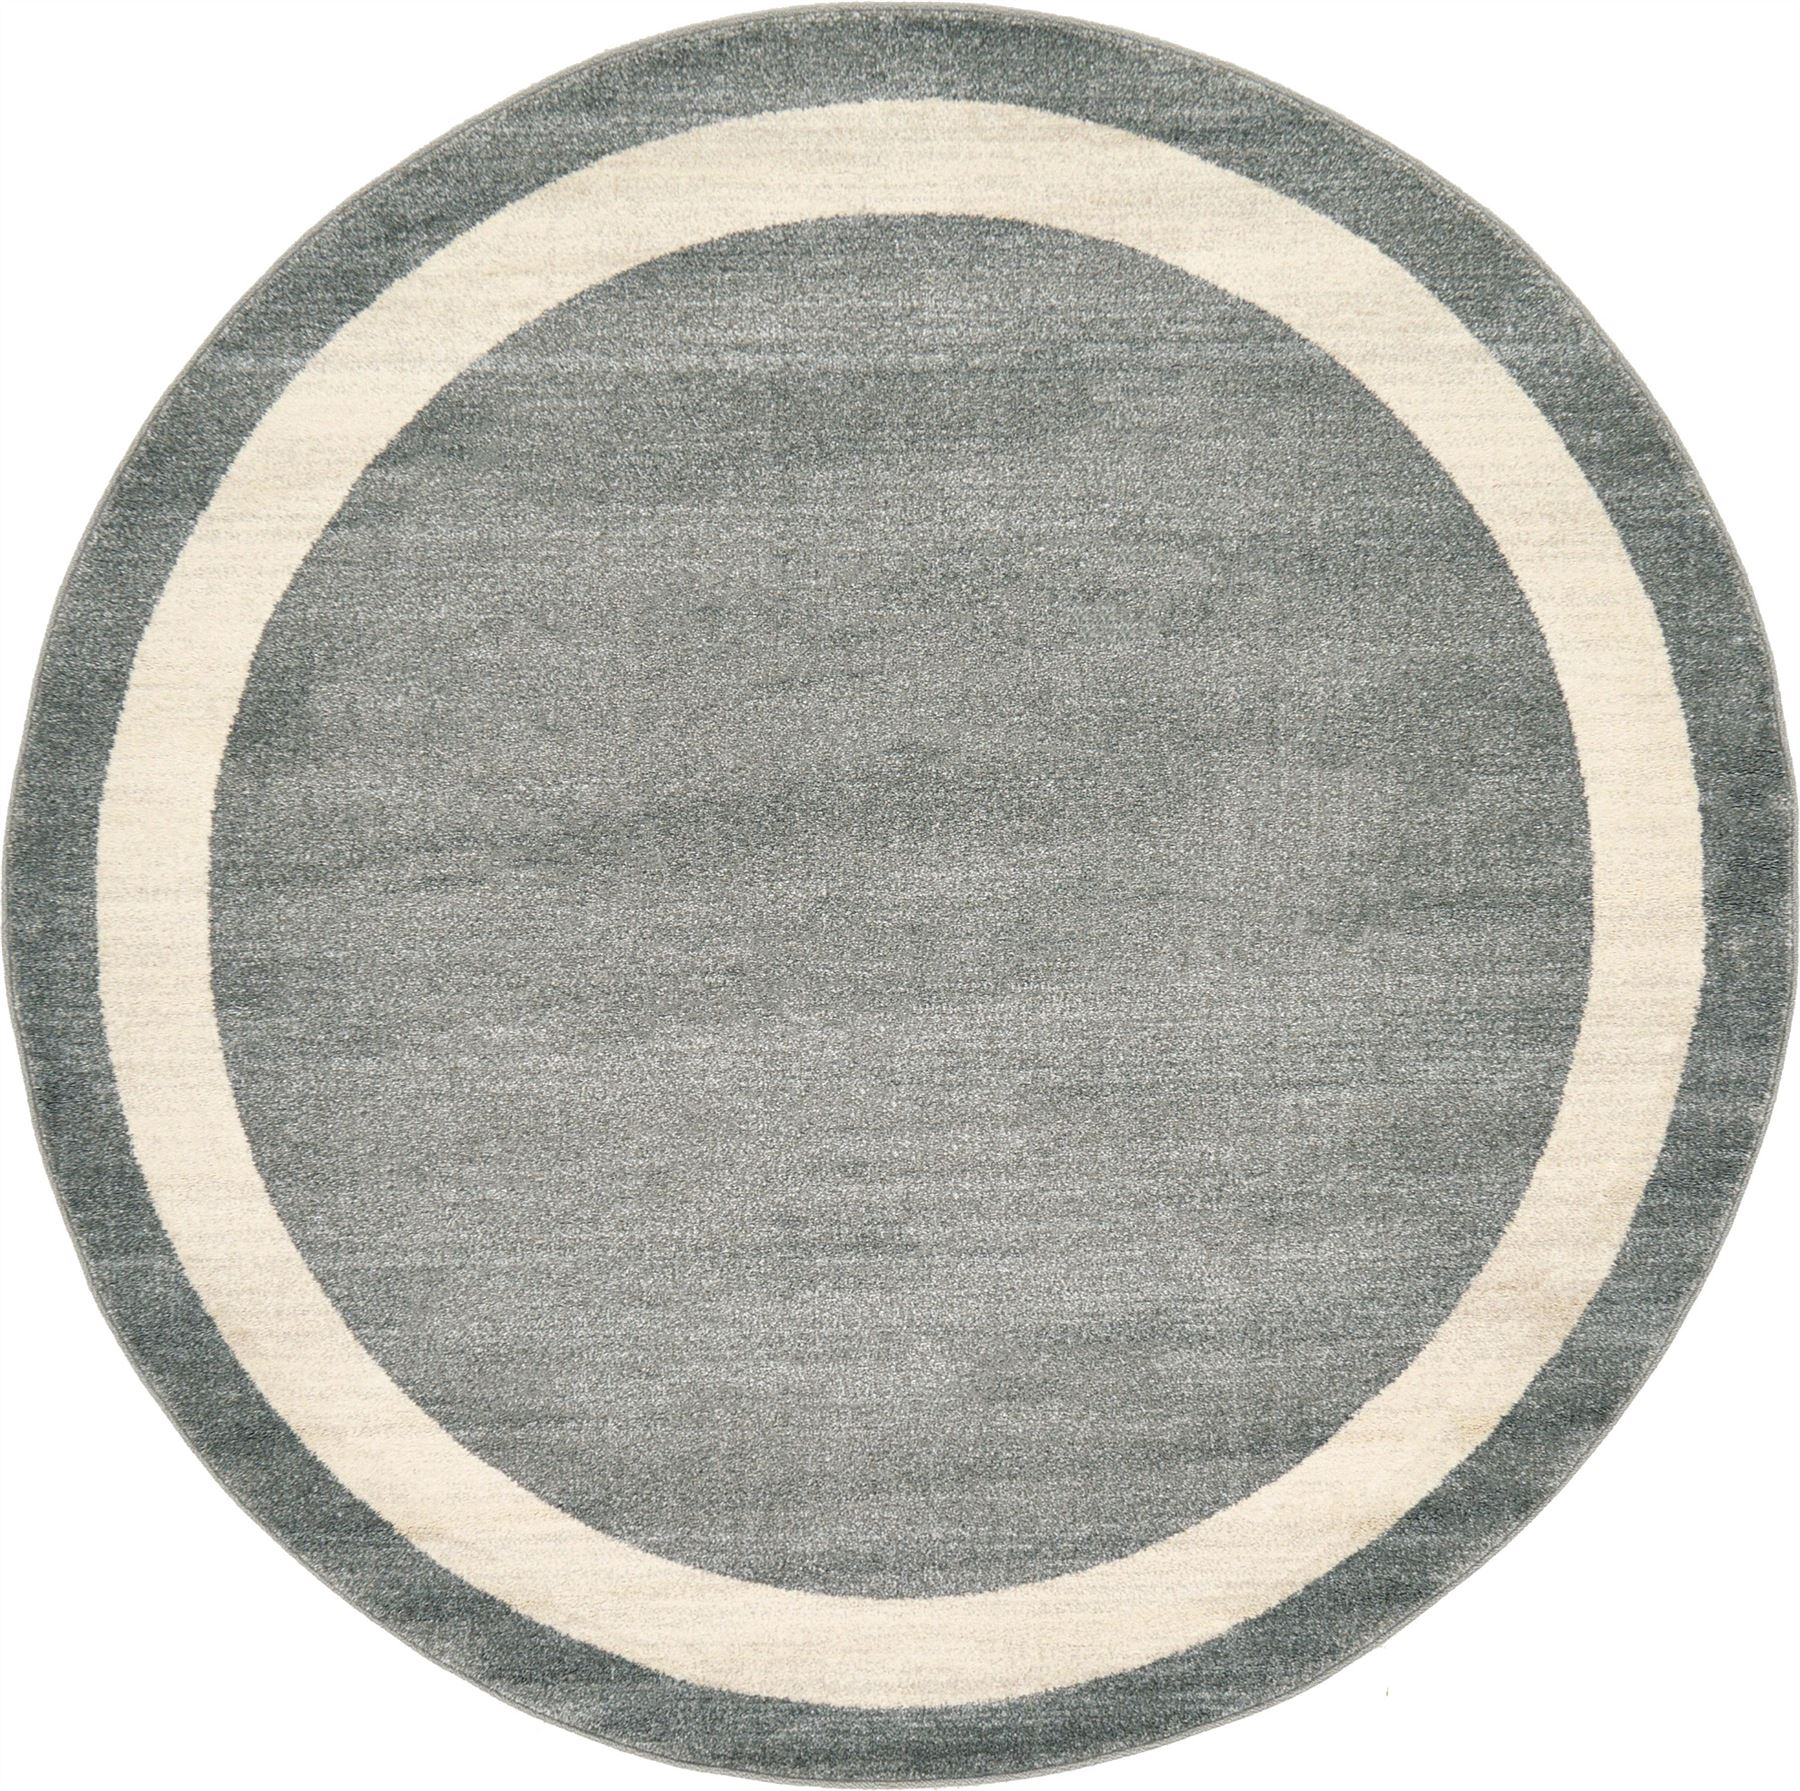 West Elm Round Rug Amazing Area Rug Best Round Area Rugs: Carpet Vidalondon